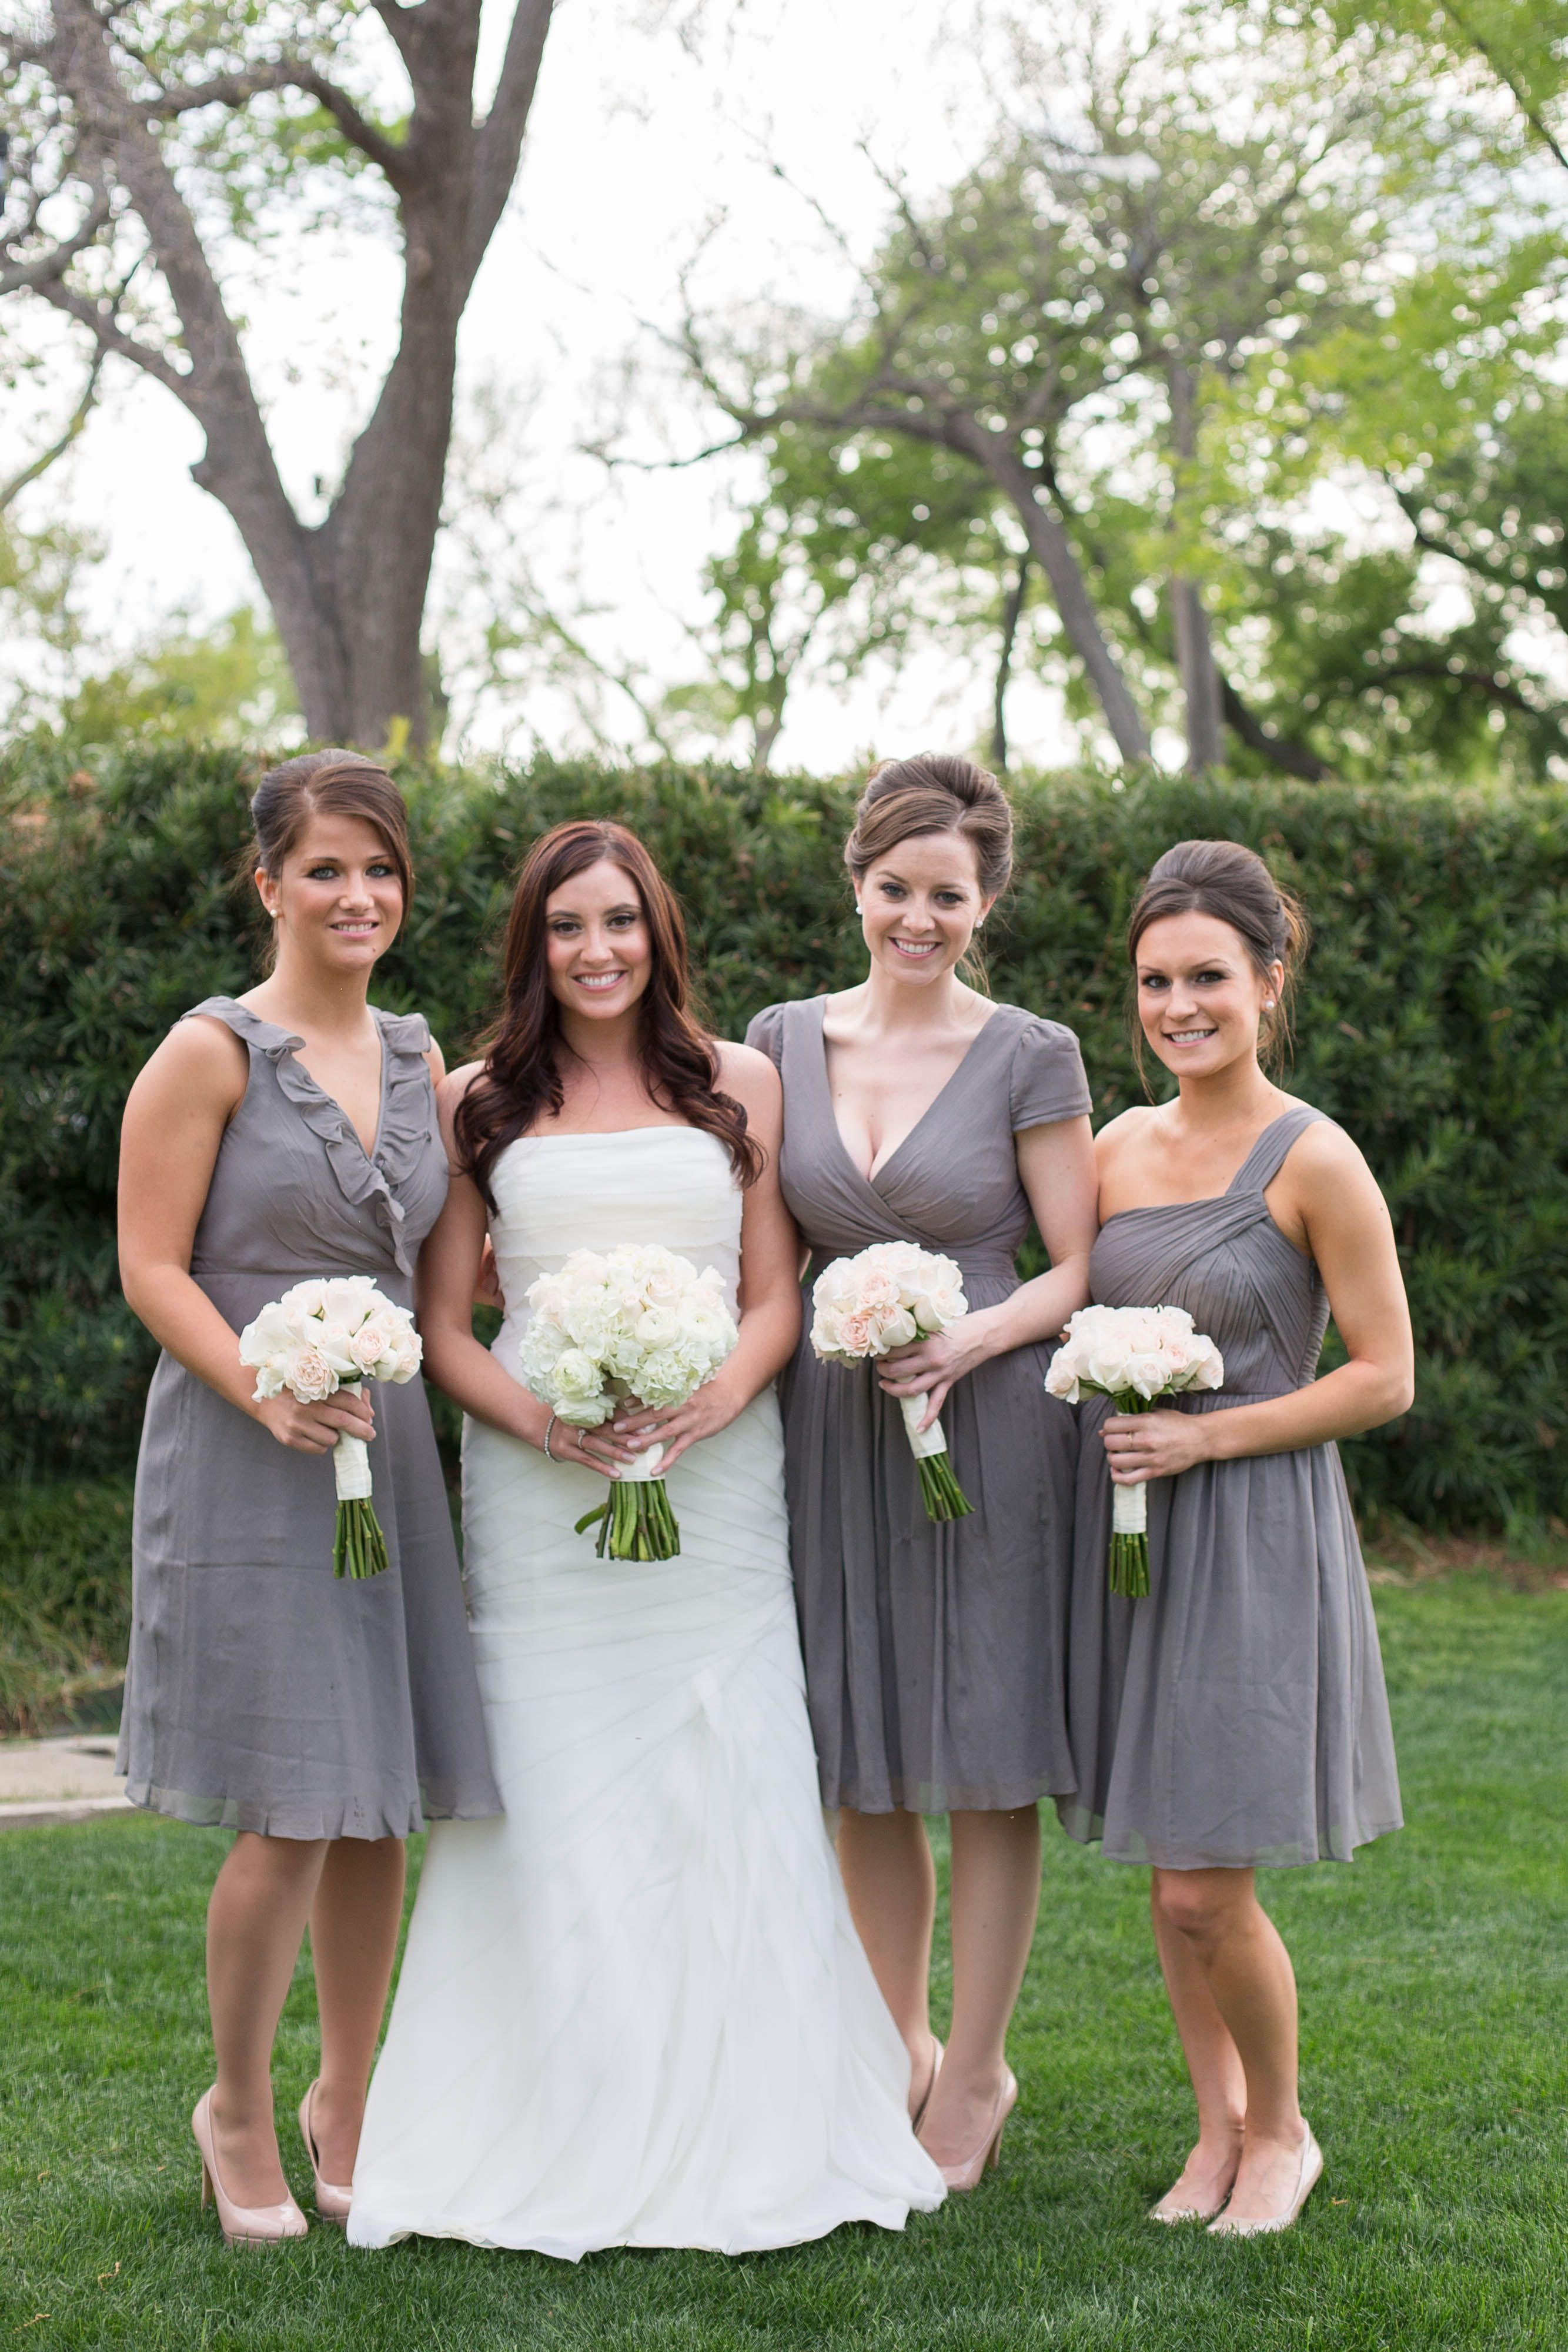 Middle gray dress thats the one we are talking about sam j crew chiffon bridesmaid dresses wedding and bridal inspiration ombrellifo Image collections